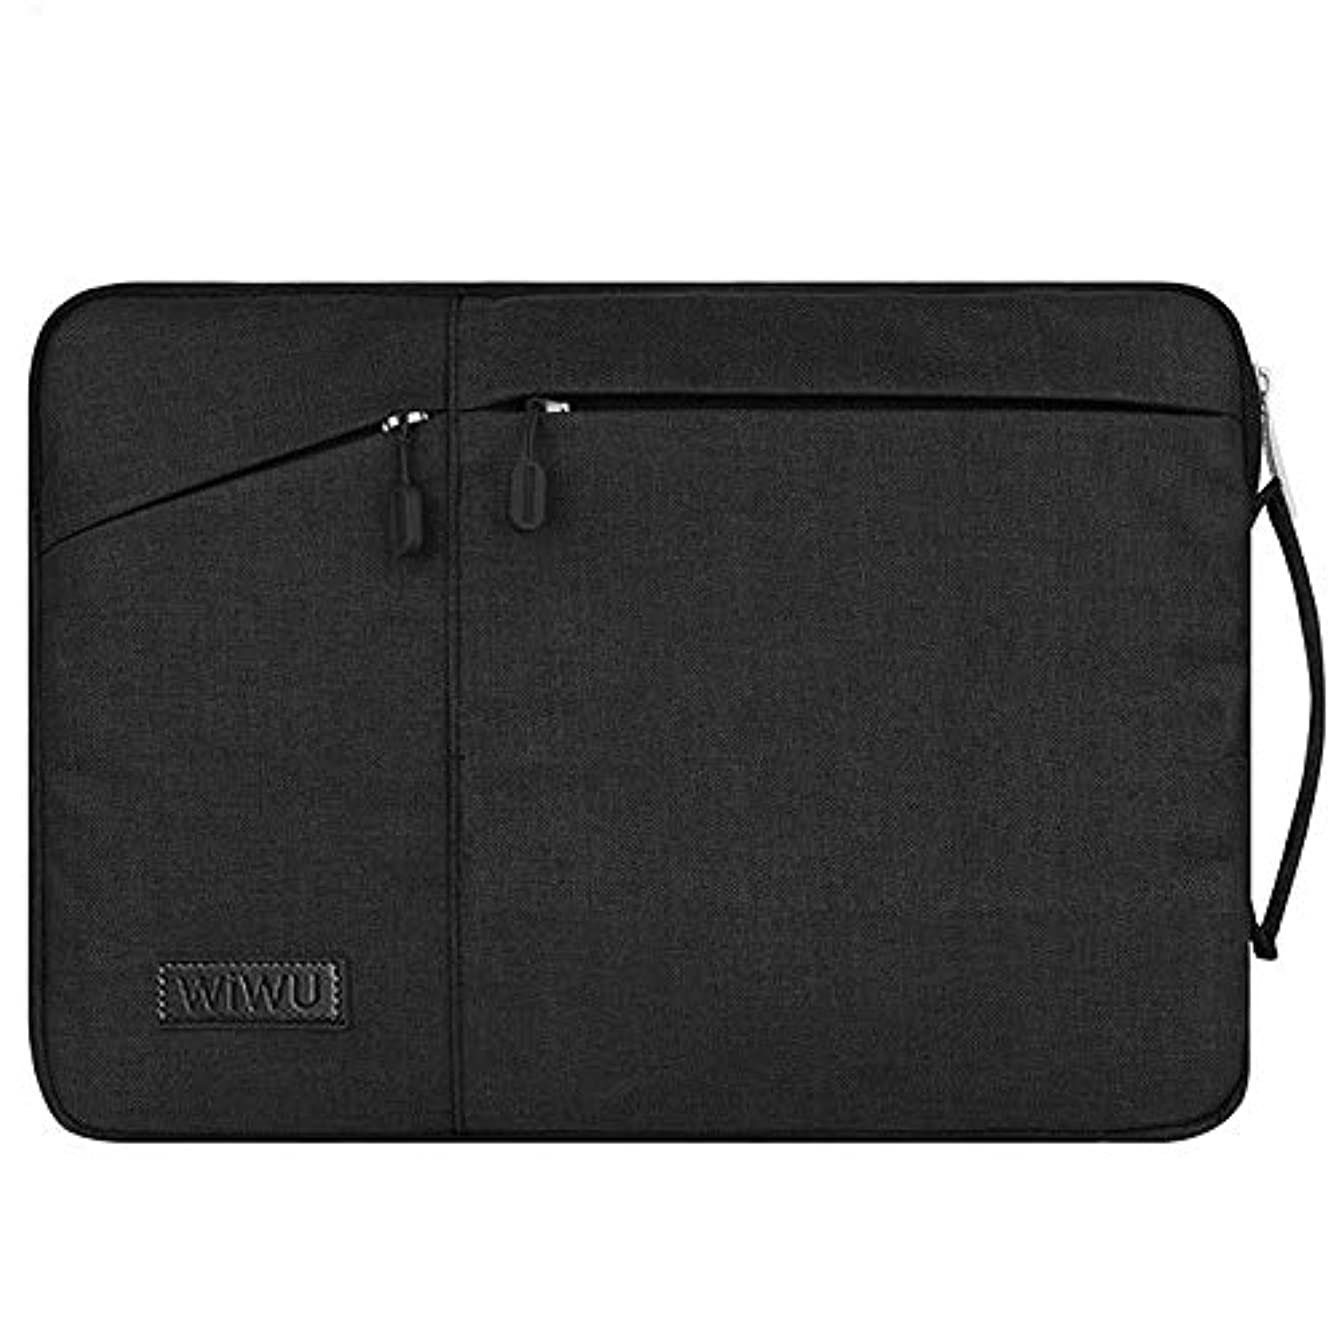 WIWU Laptop Sleeve Bag,Premium Water Resistant Case Cover Shockproof Notebook Handbag for Men Women Compatible for MacBook/Dell / Huawei/HP Fits 15/15.4/15.6 Inch(15